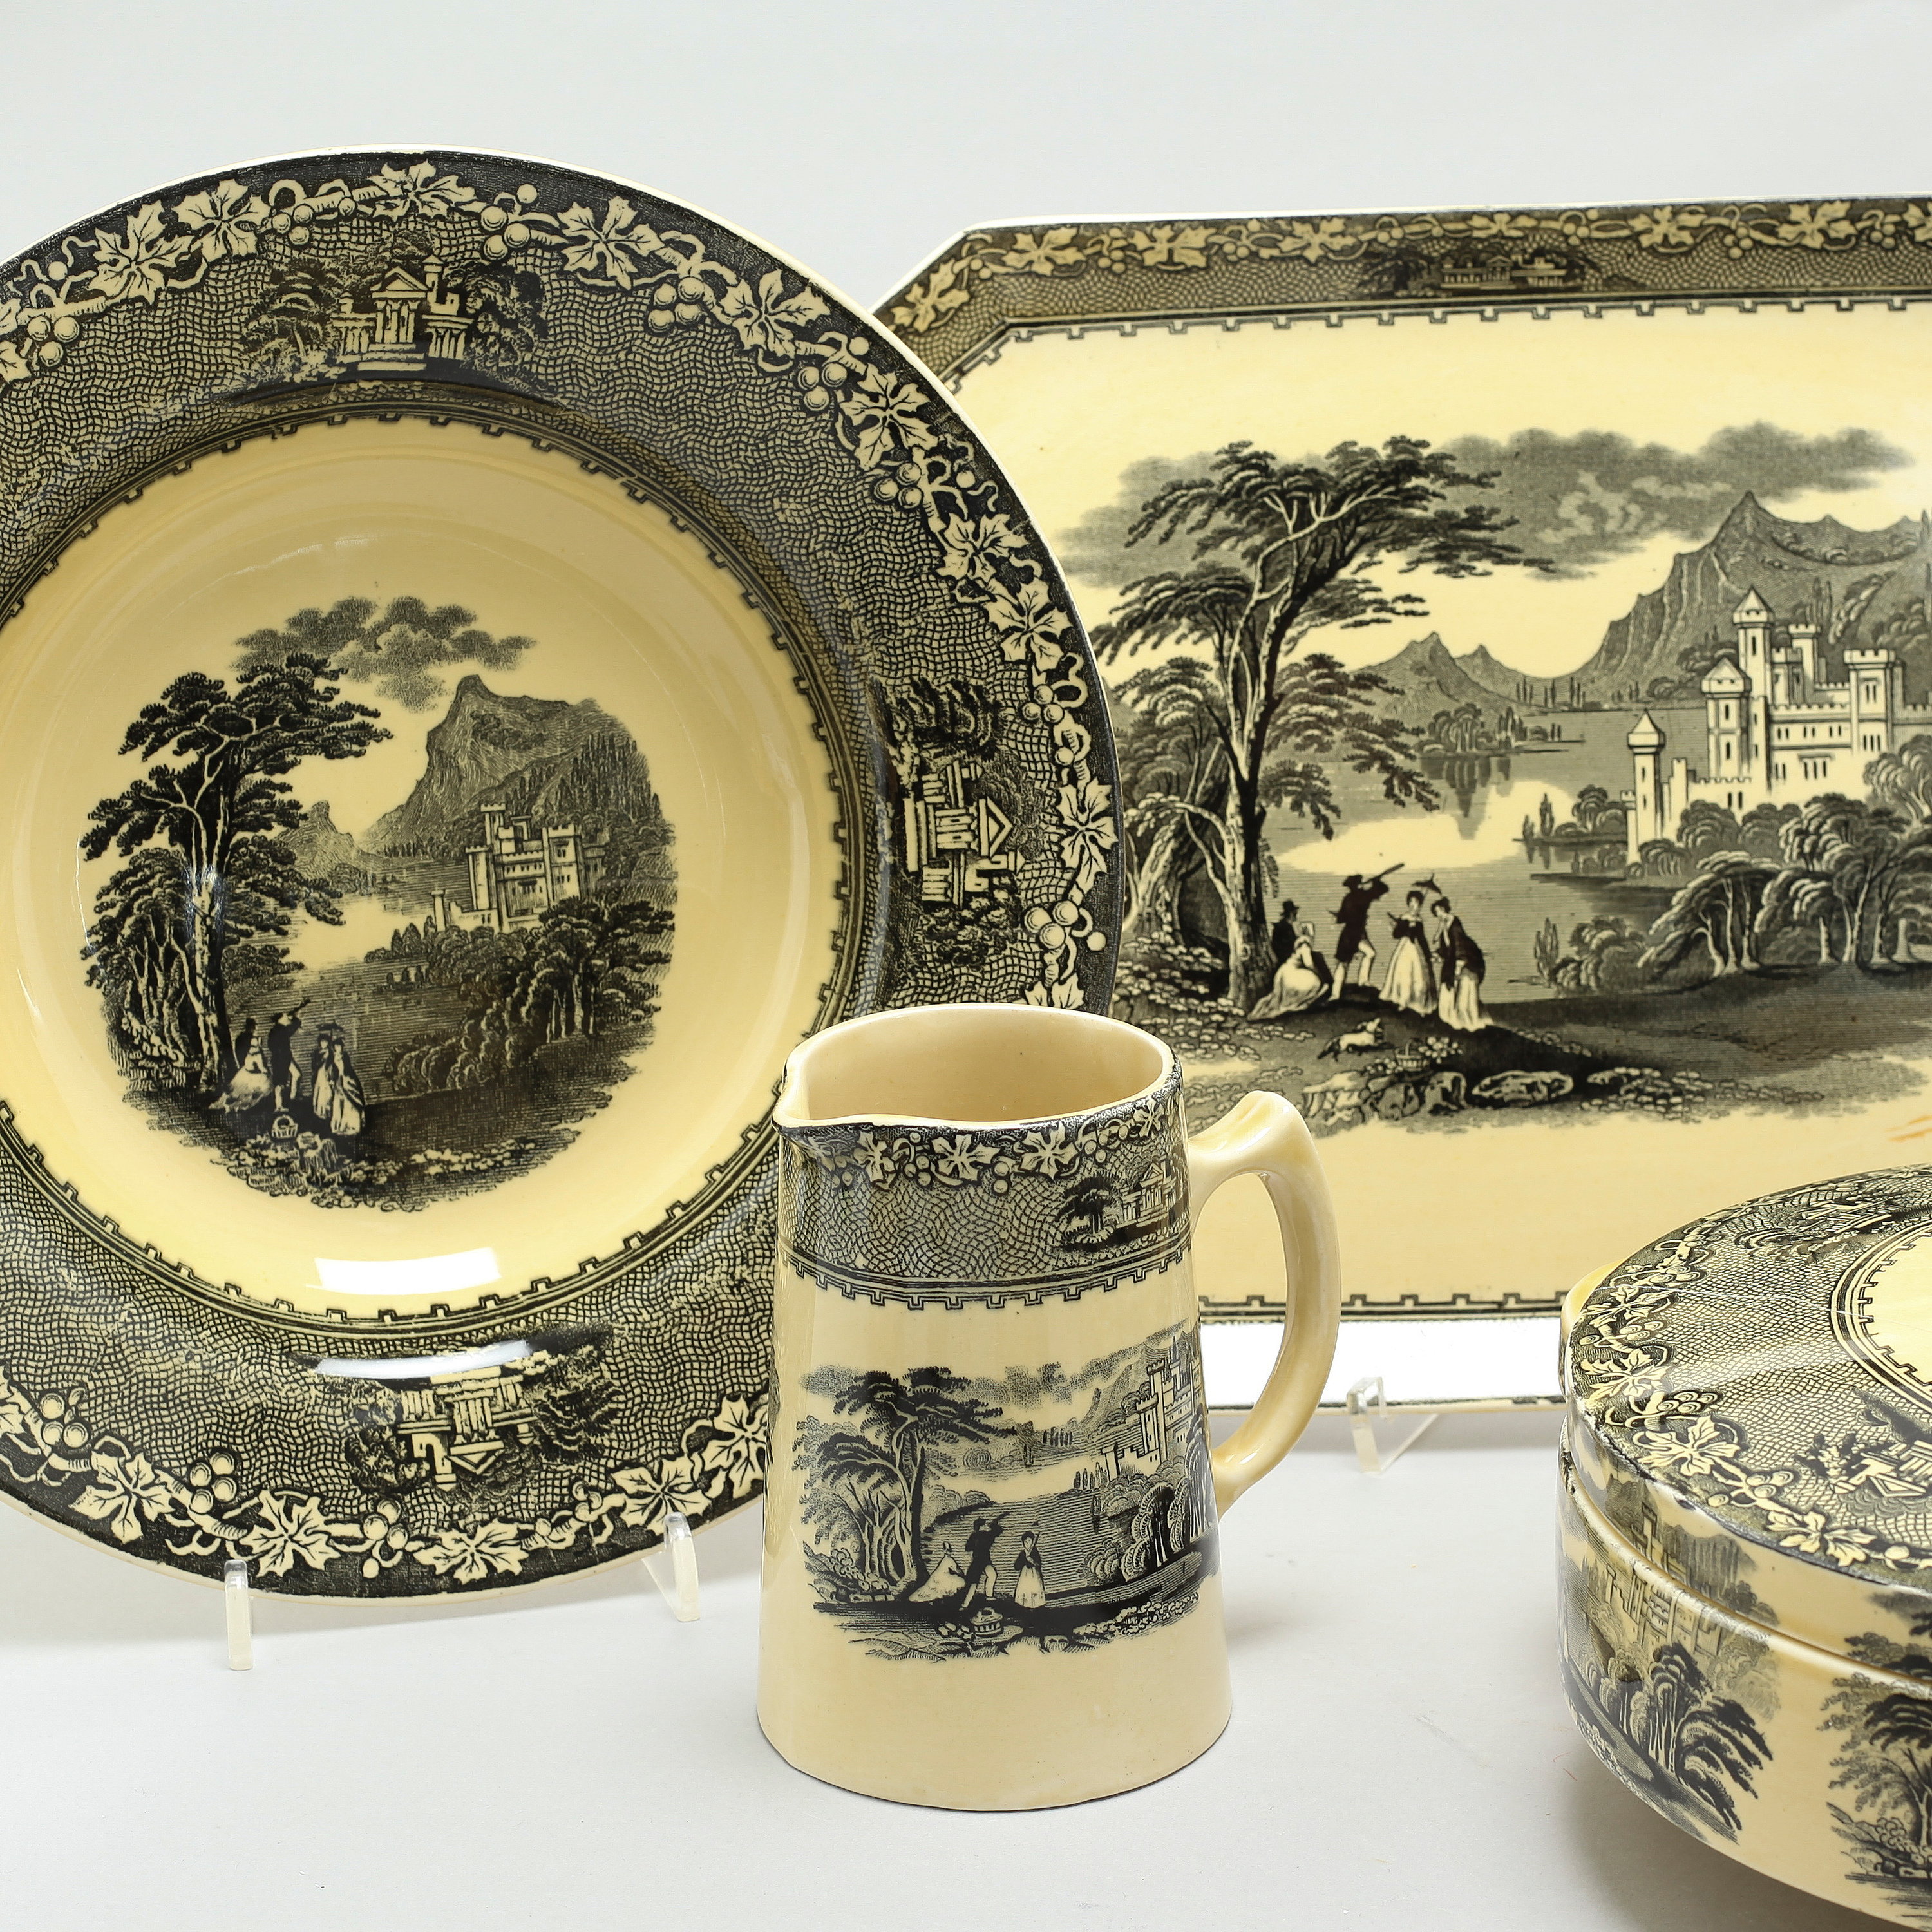 43 items of table ware in earthenware, model Jenny Lind